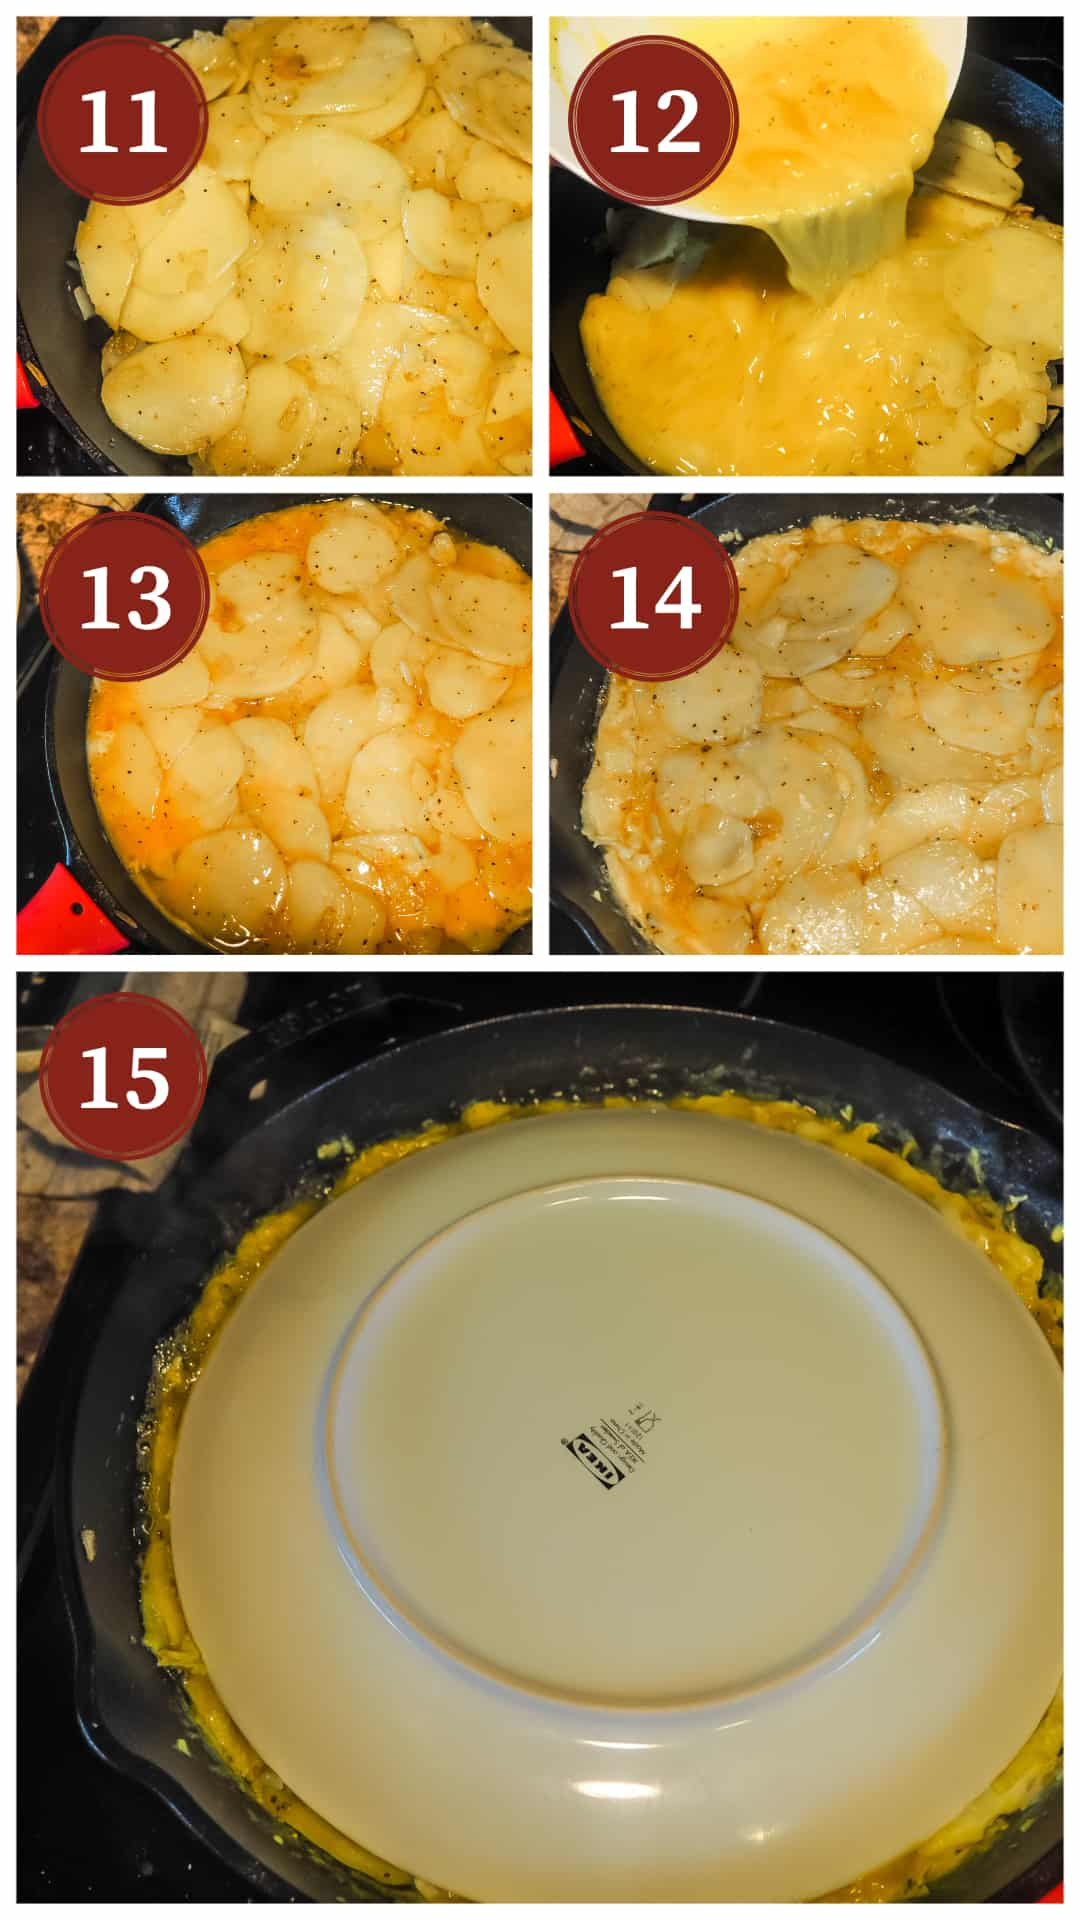 A collage of images showing the process of making a Spanish tortilla, steps 11 - 15.